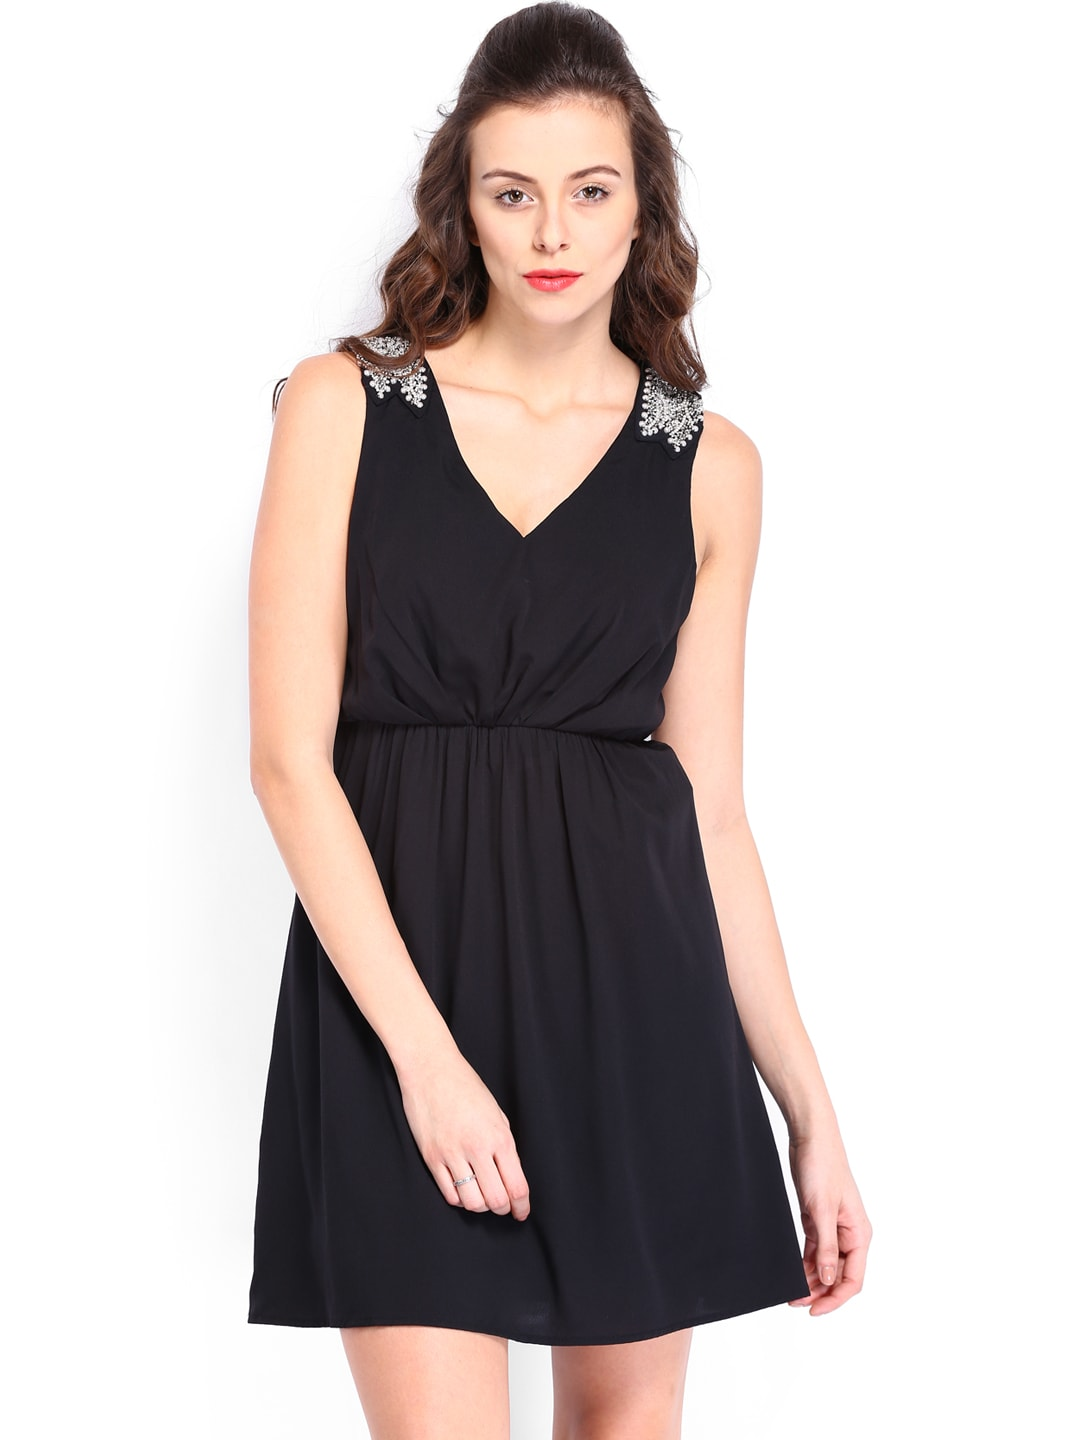 d03cd32020d7 Vero Moda Women Dresses Price List in India 14 April 2019